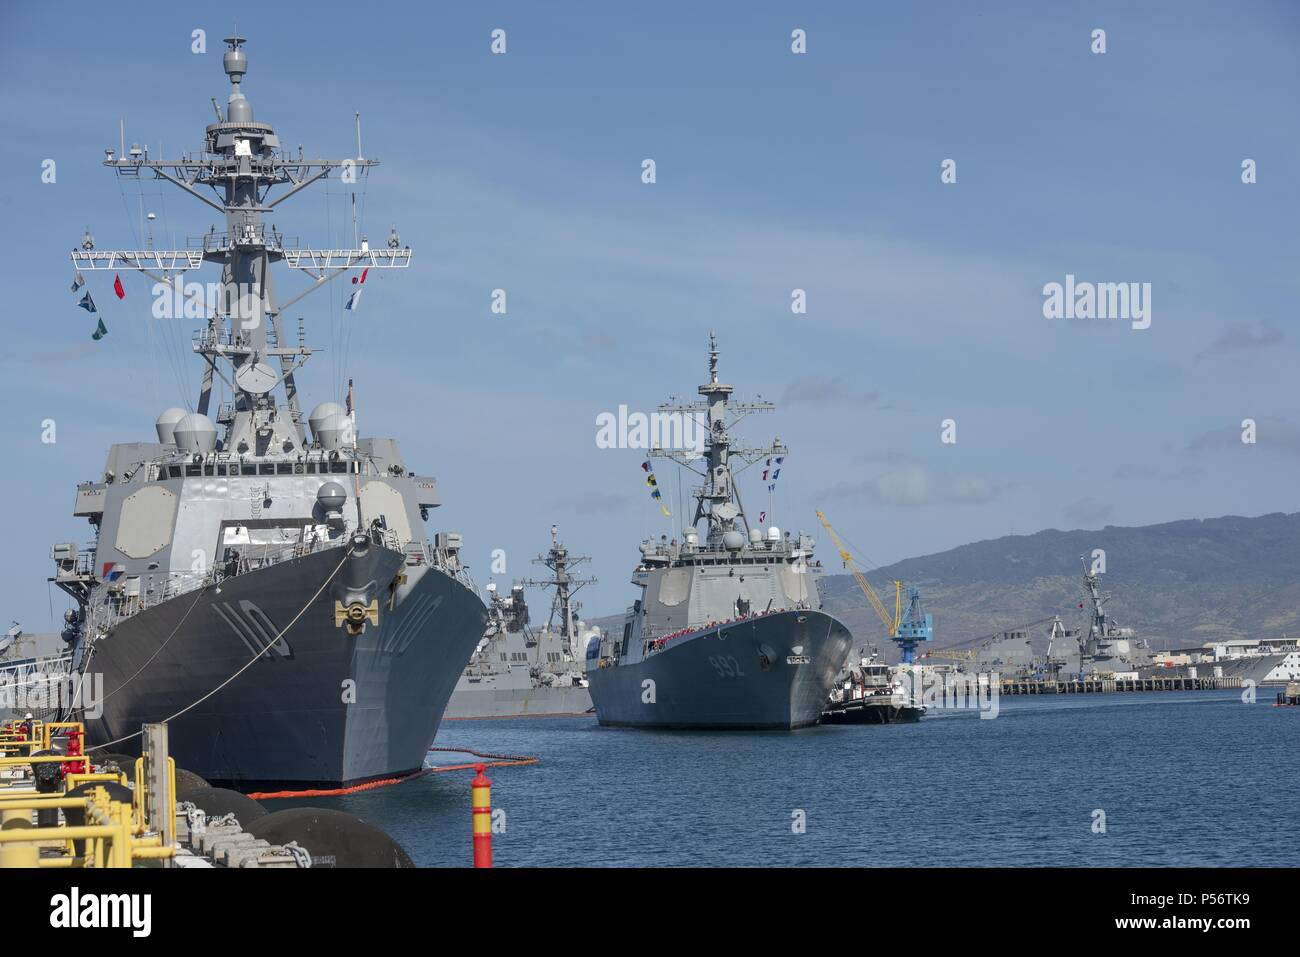 180608-N-QE566-0001 PEARL HARBOR -- (June 8, 2018) The Republic of Korea Navy destroyer Yulgok Yi I (DDG 992) arrives at Joint Base Pearl Harbor-Hickam June 8 in preparation for the ship's participation in the Rim of the Pacific (RIMPAC) Exercise 2018, June 8, 2018. Twenty-six nations, 47 ships, five submarines, about 200 aircraft, and 25, 000 personnel are participating in RIMPAC from June 27 to Aug. 2 in and around the Hawaiian Islands and Southern California. The world's largest international maritime exercise, RIMPAC provides a unique training opportunity while fostering and sustaining coo - Stock Image